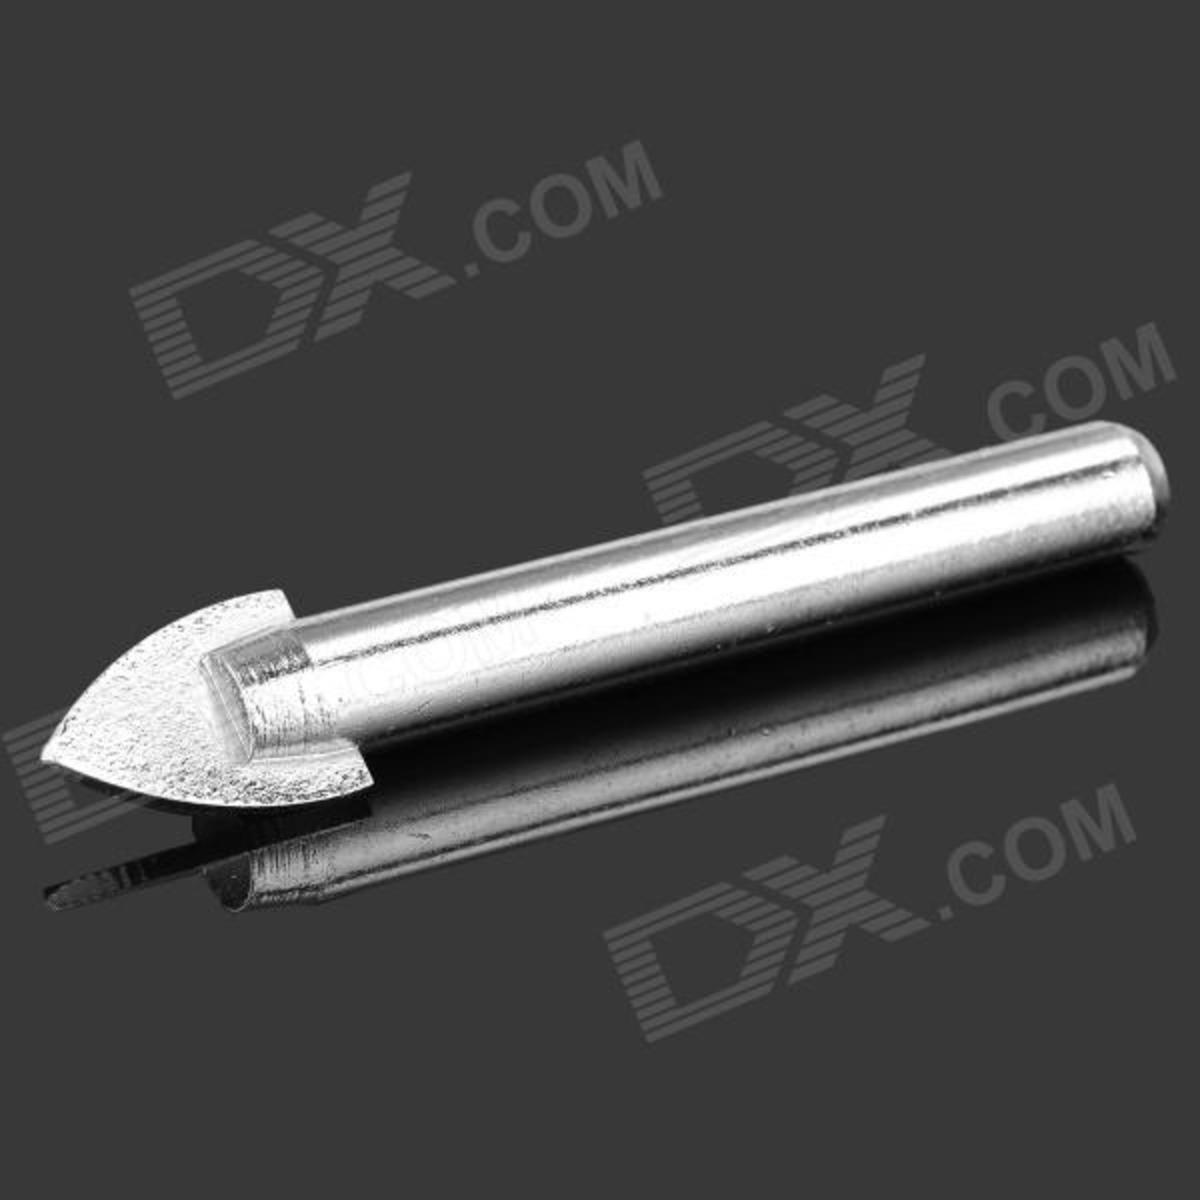 Spear point glass drill bit